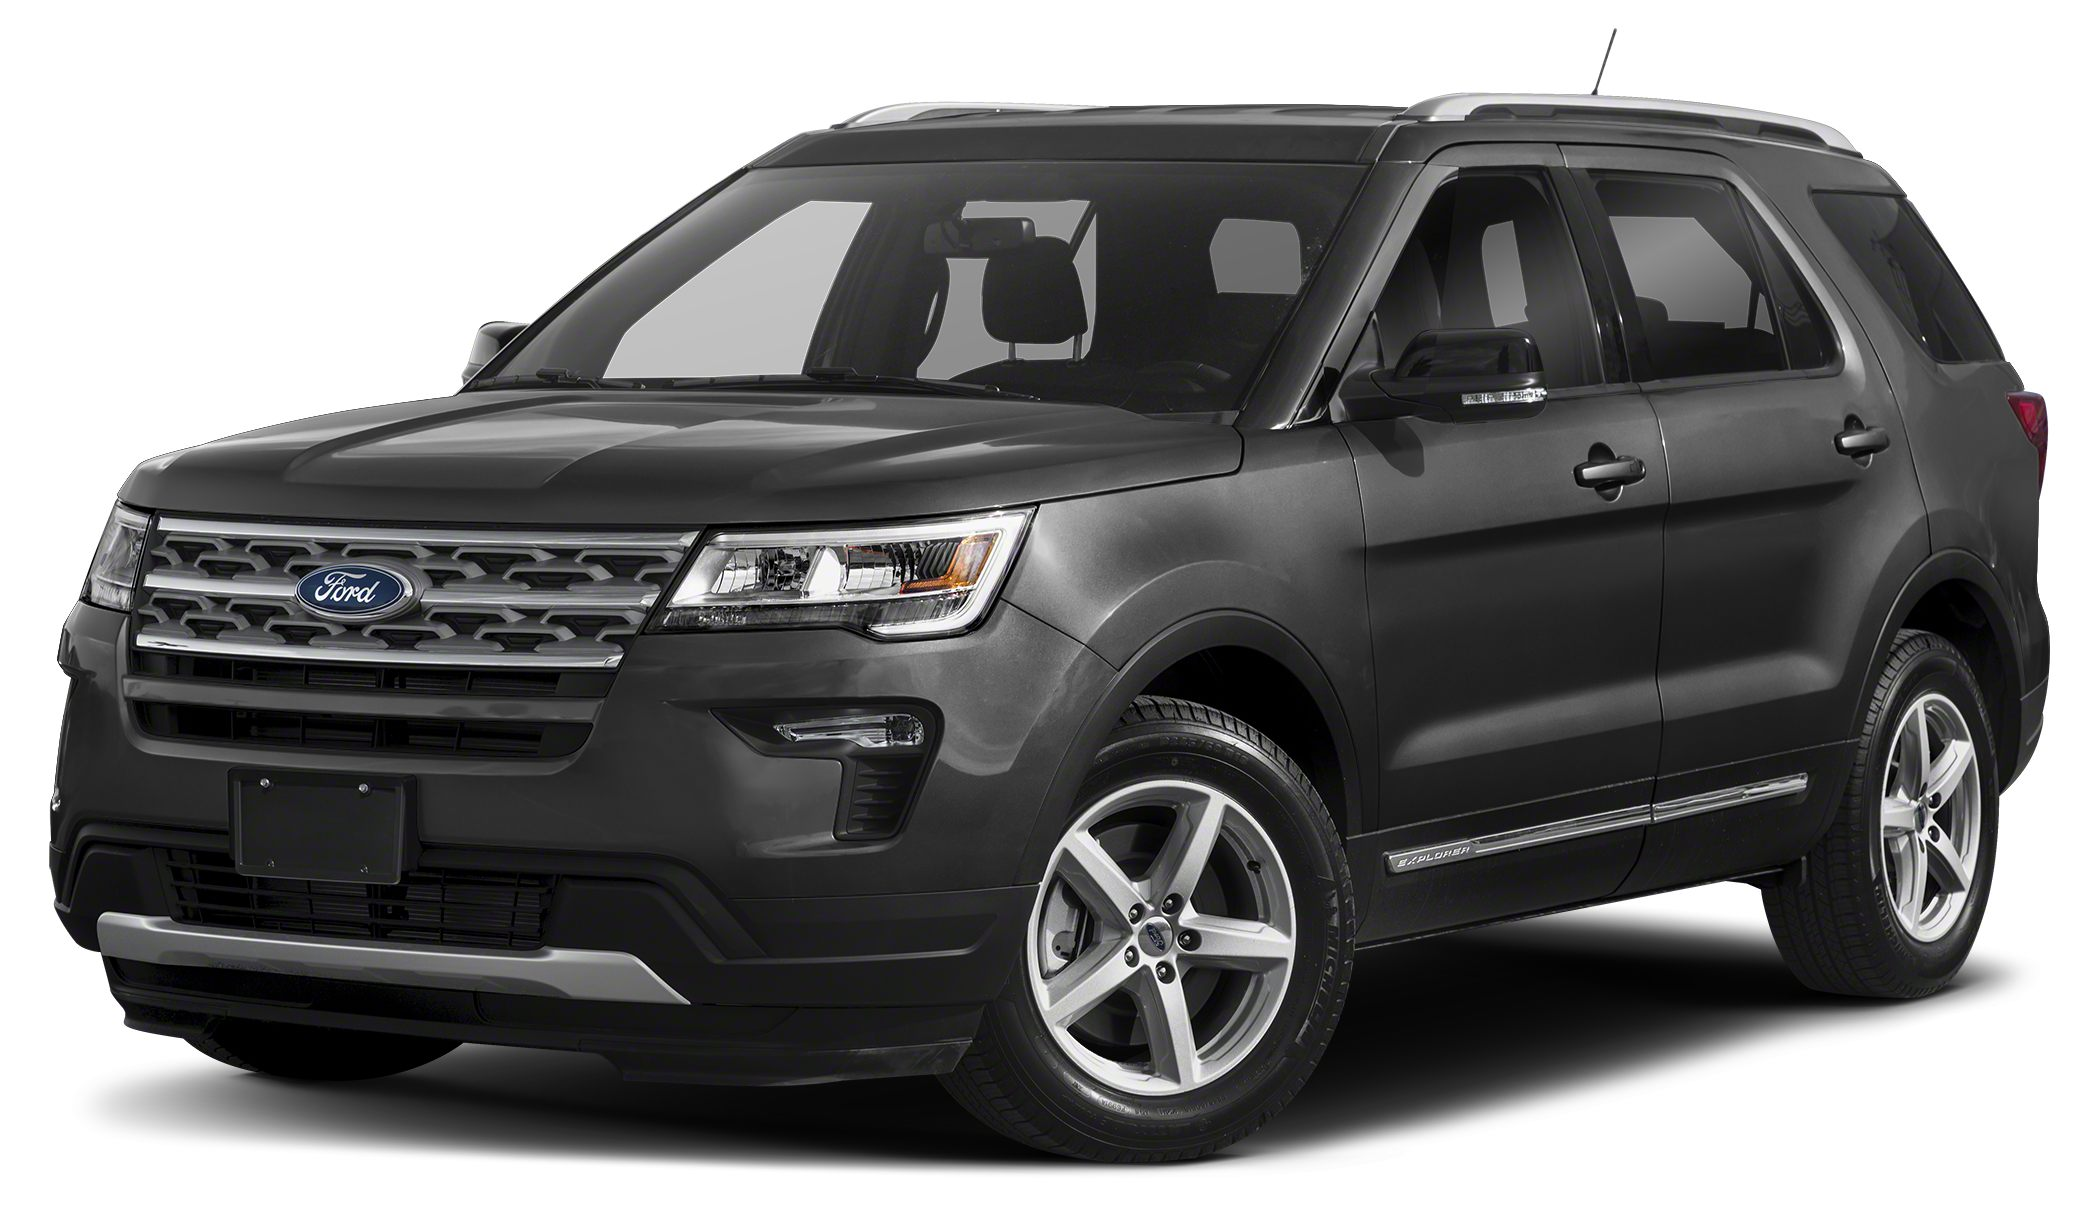 2019 Jeep® Explorer Platinum